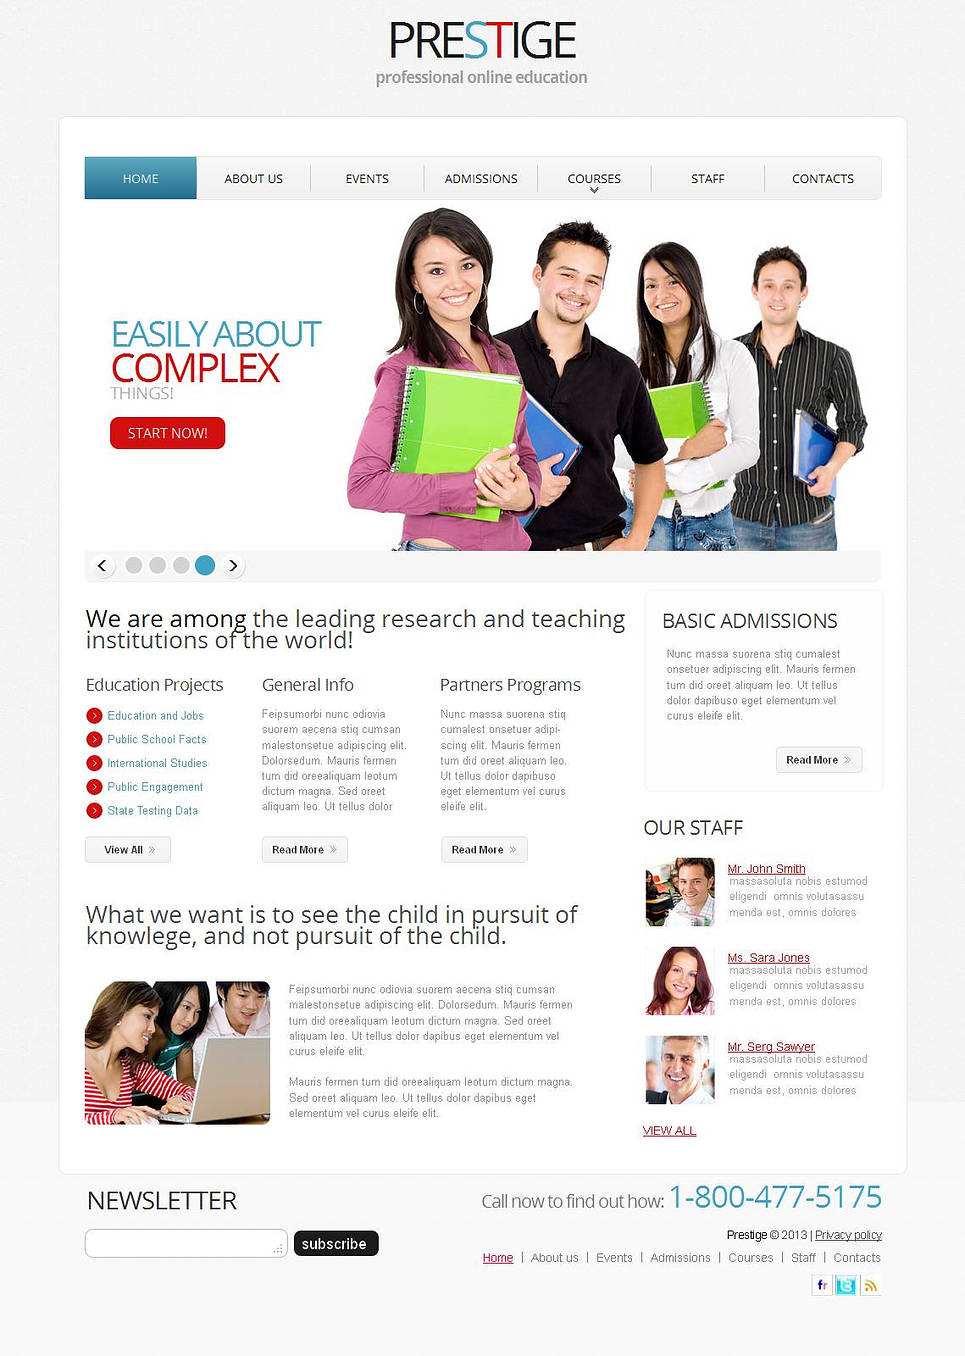 Career Education Website Template on White Background - image